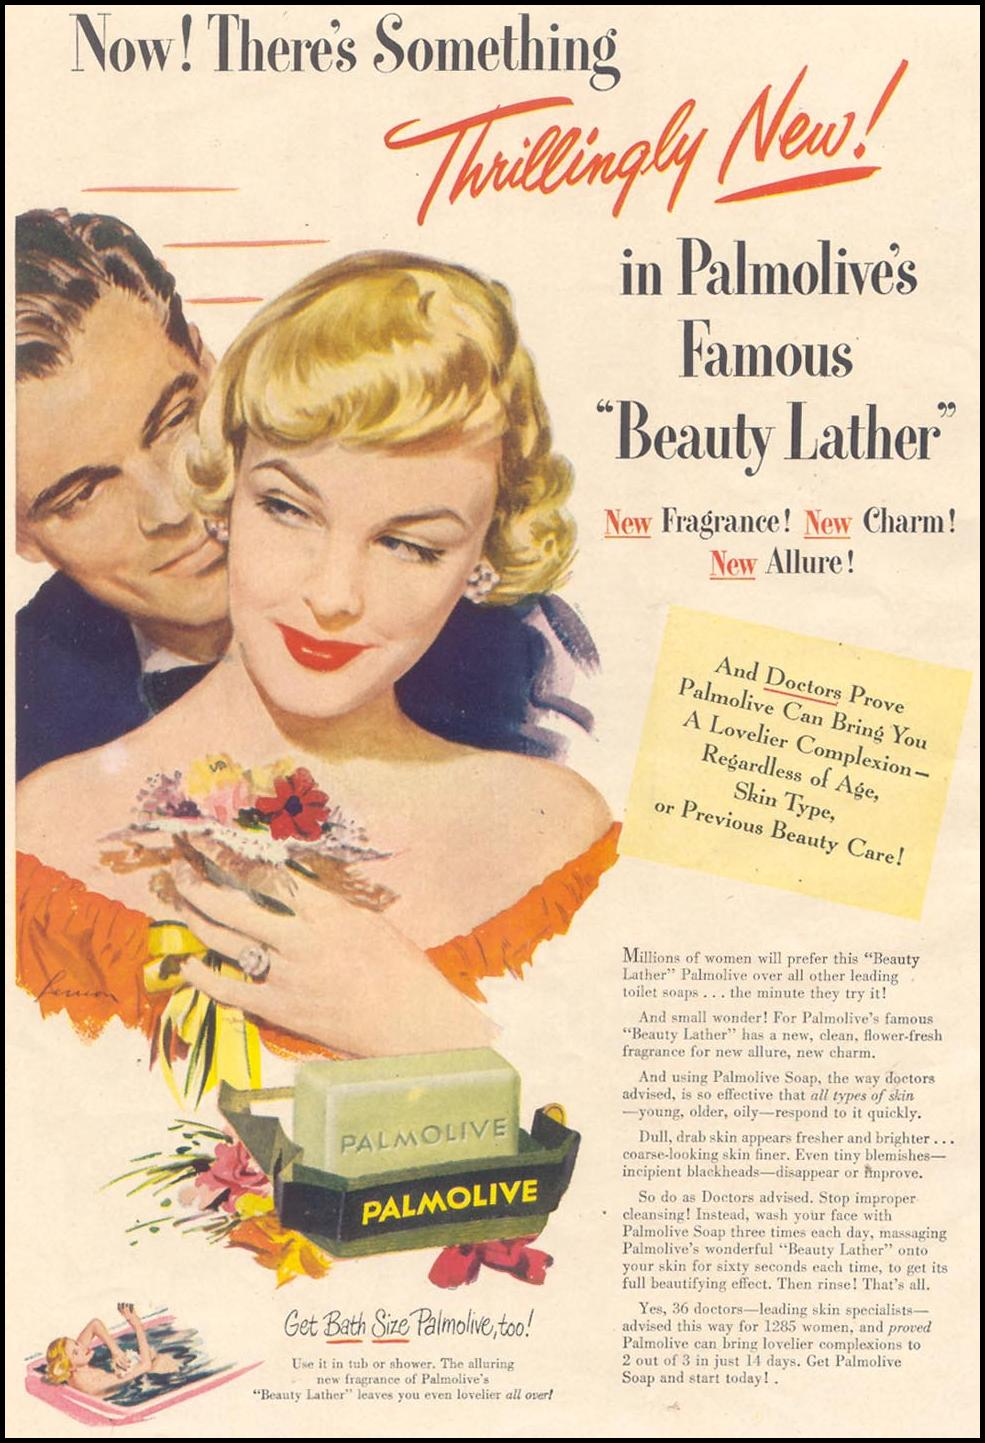 PALMOLIVE SOAP GOOD HOUSEKEEPING 07/01/1949 p. 24